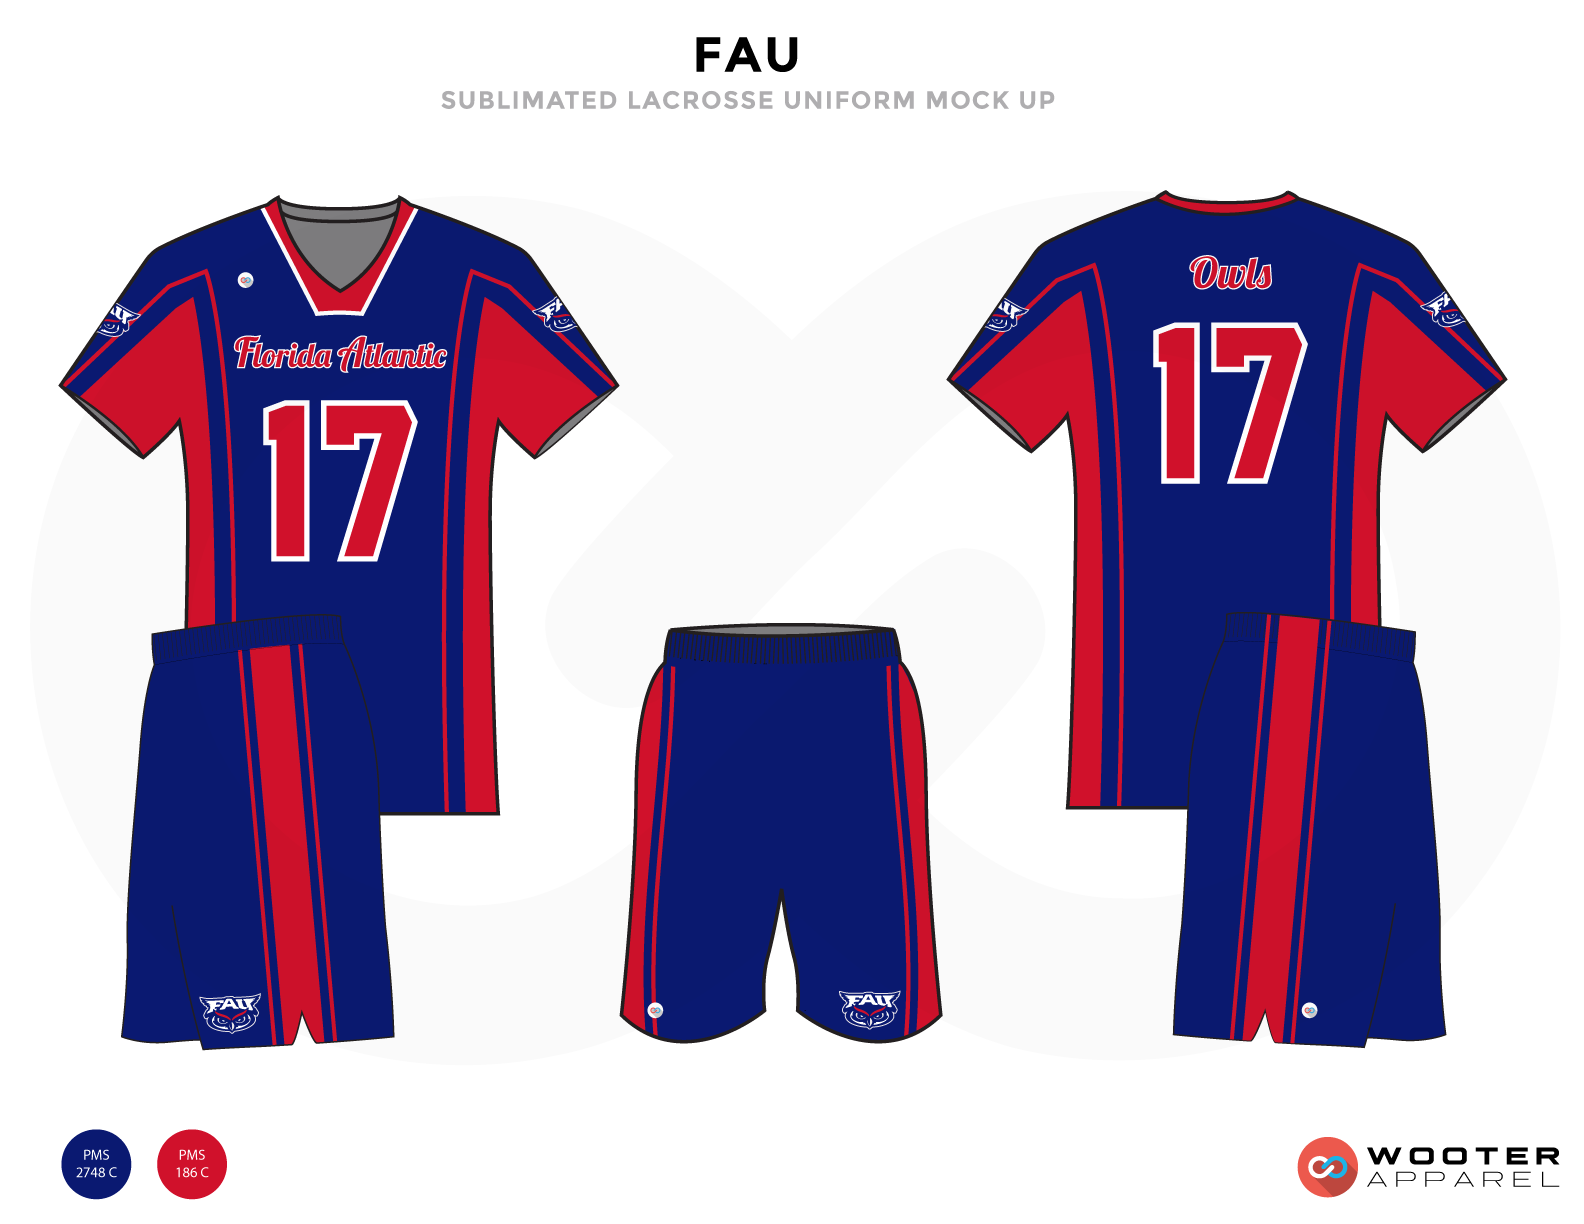 FAU Blue Red and White Lacrosse Uniforms, Reversible Pinnies, Jerseys, Shorts